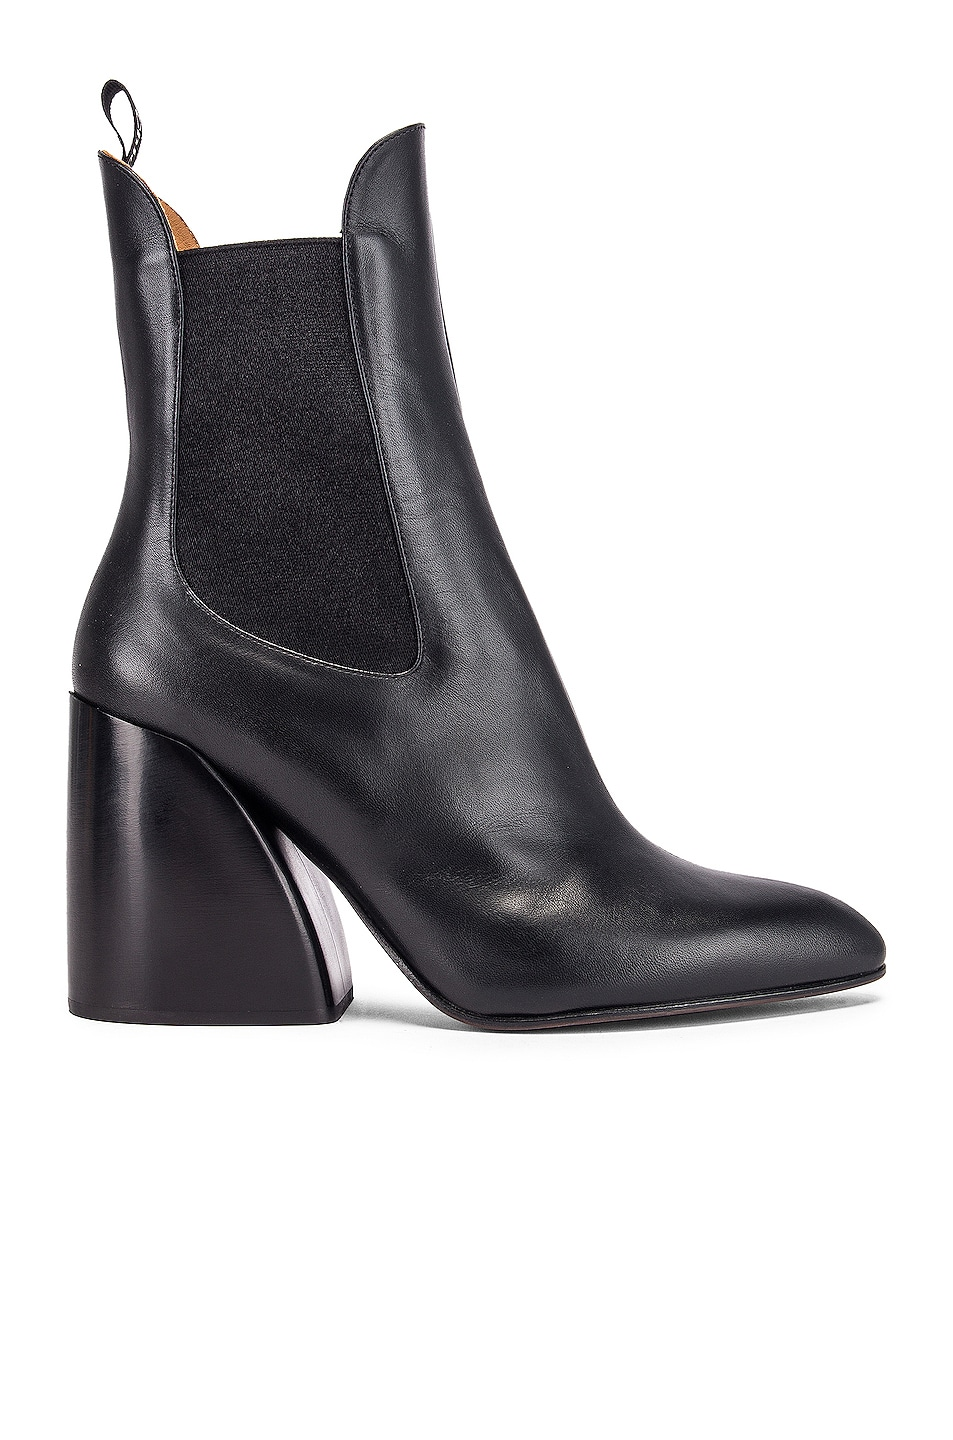 Image 1 of Chloe Leather Ankle Booties in Black